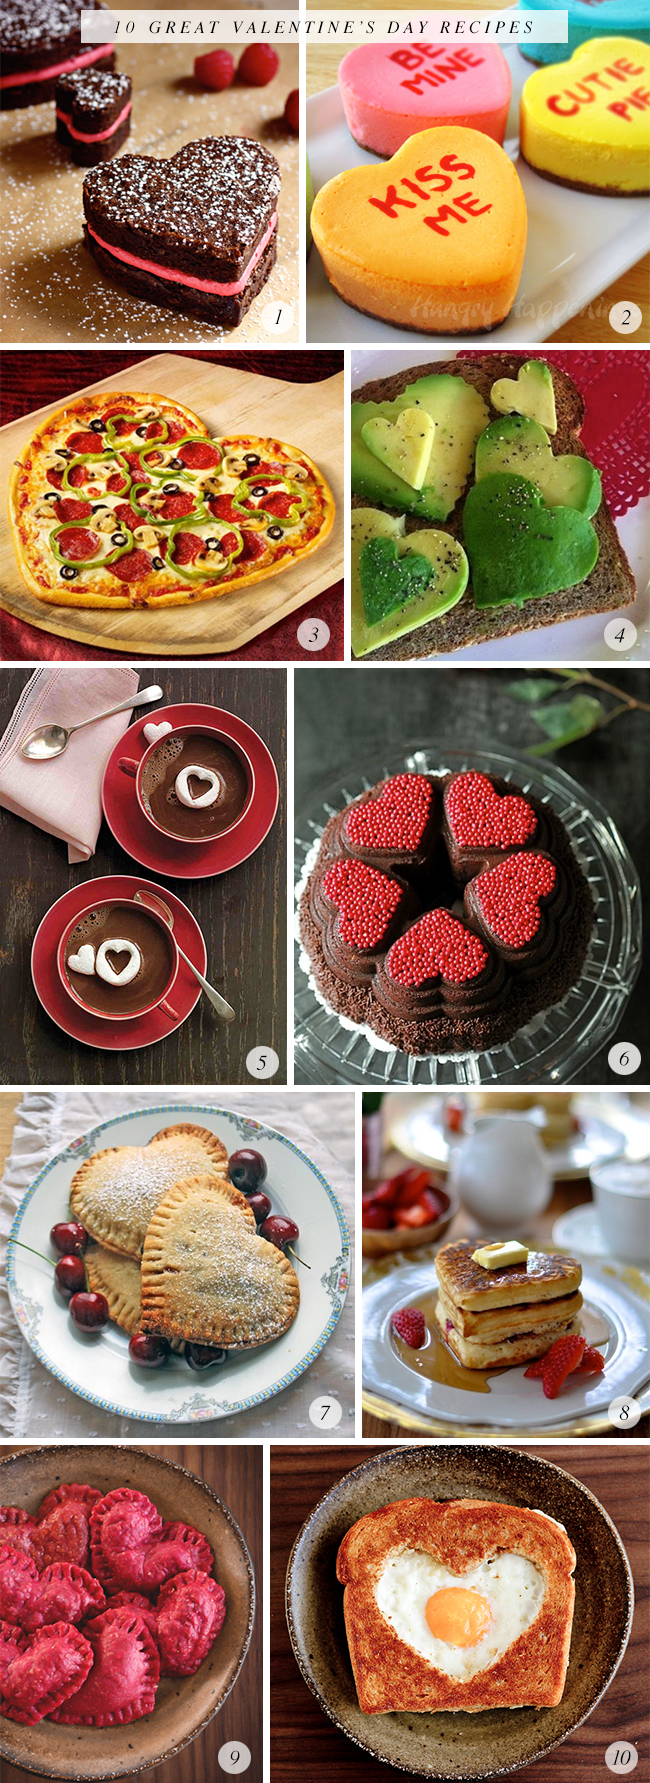 10 Great Valentine's Day Recipes // Bubby and Bean